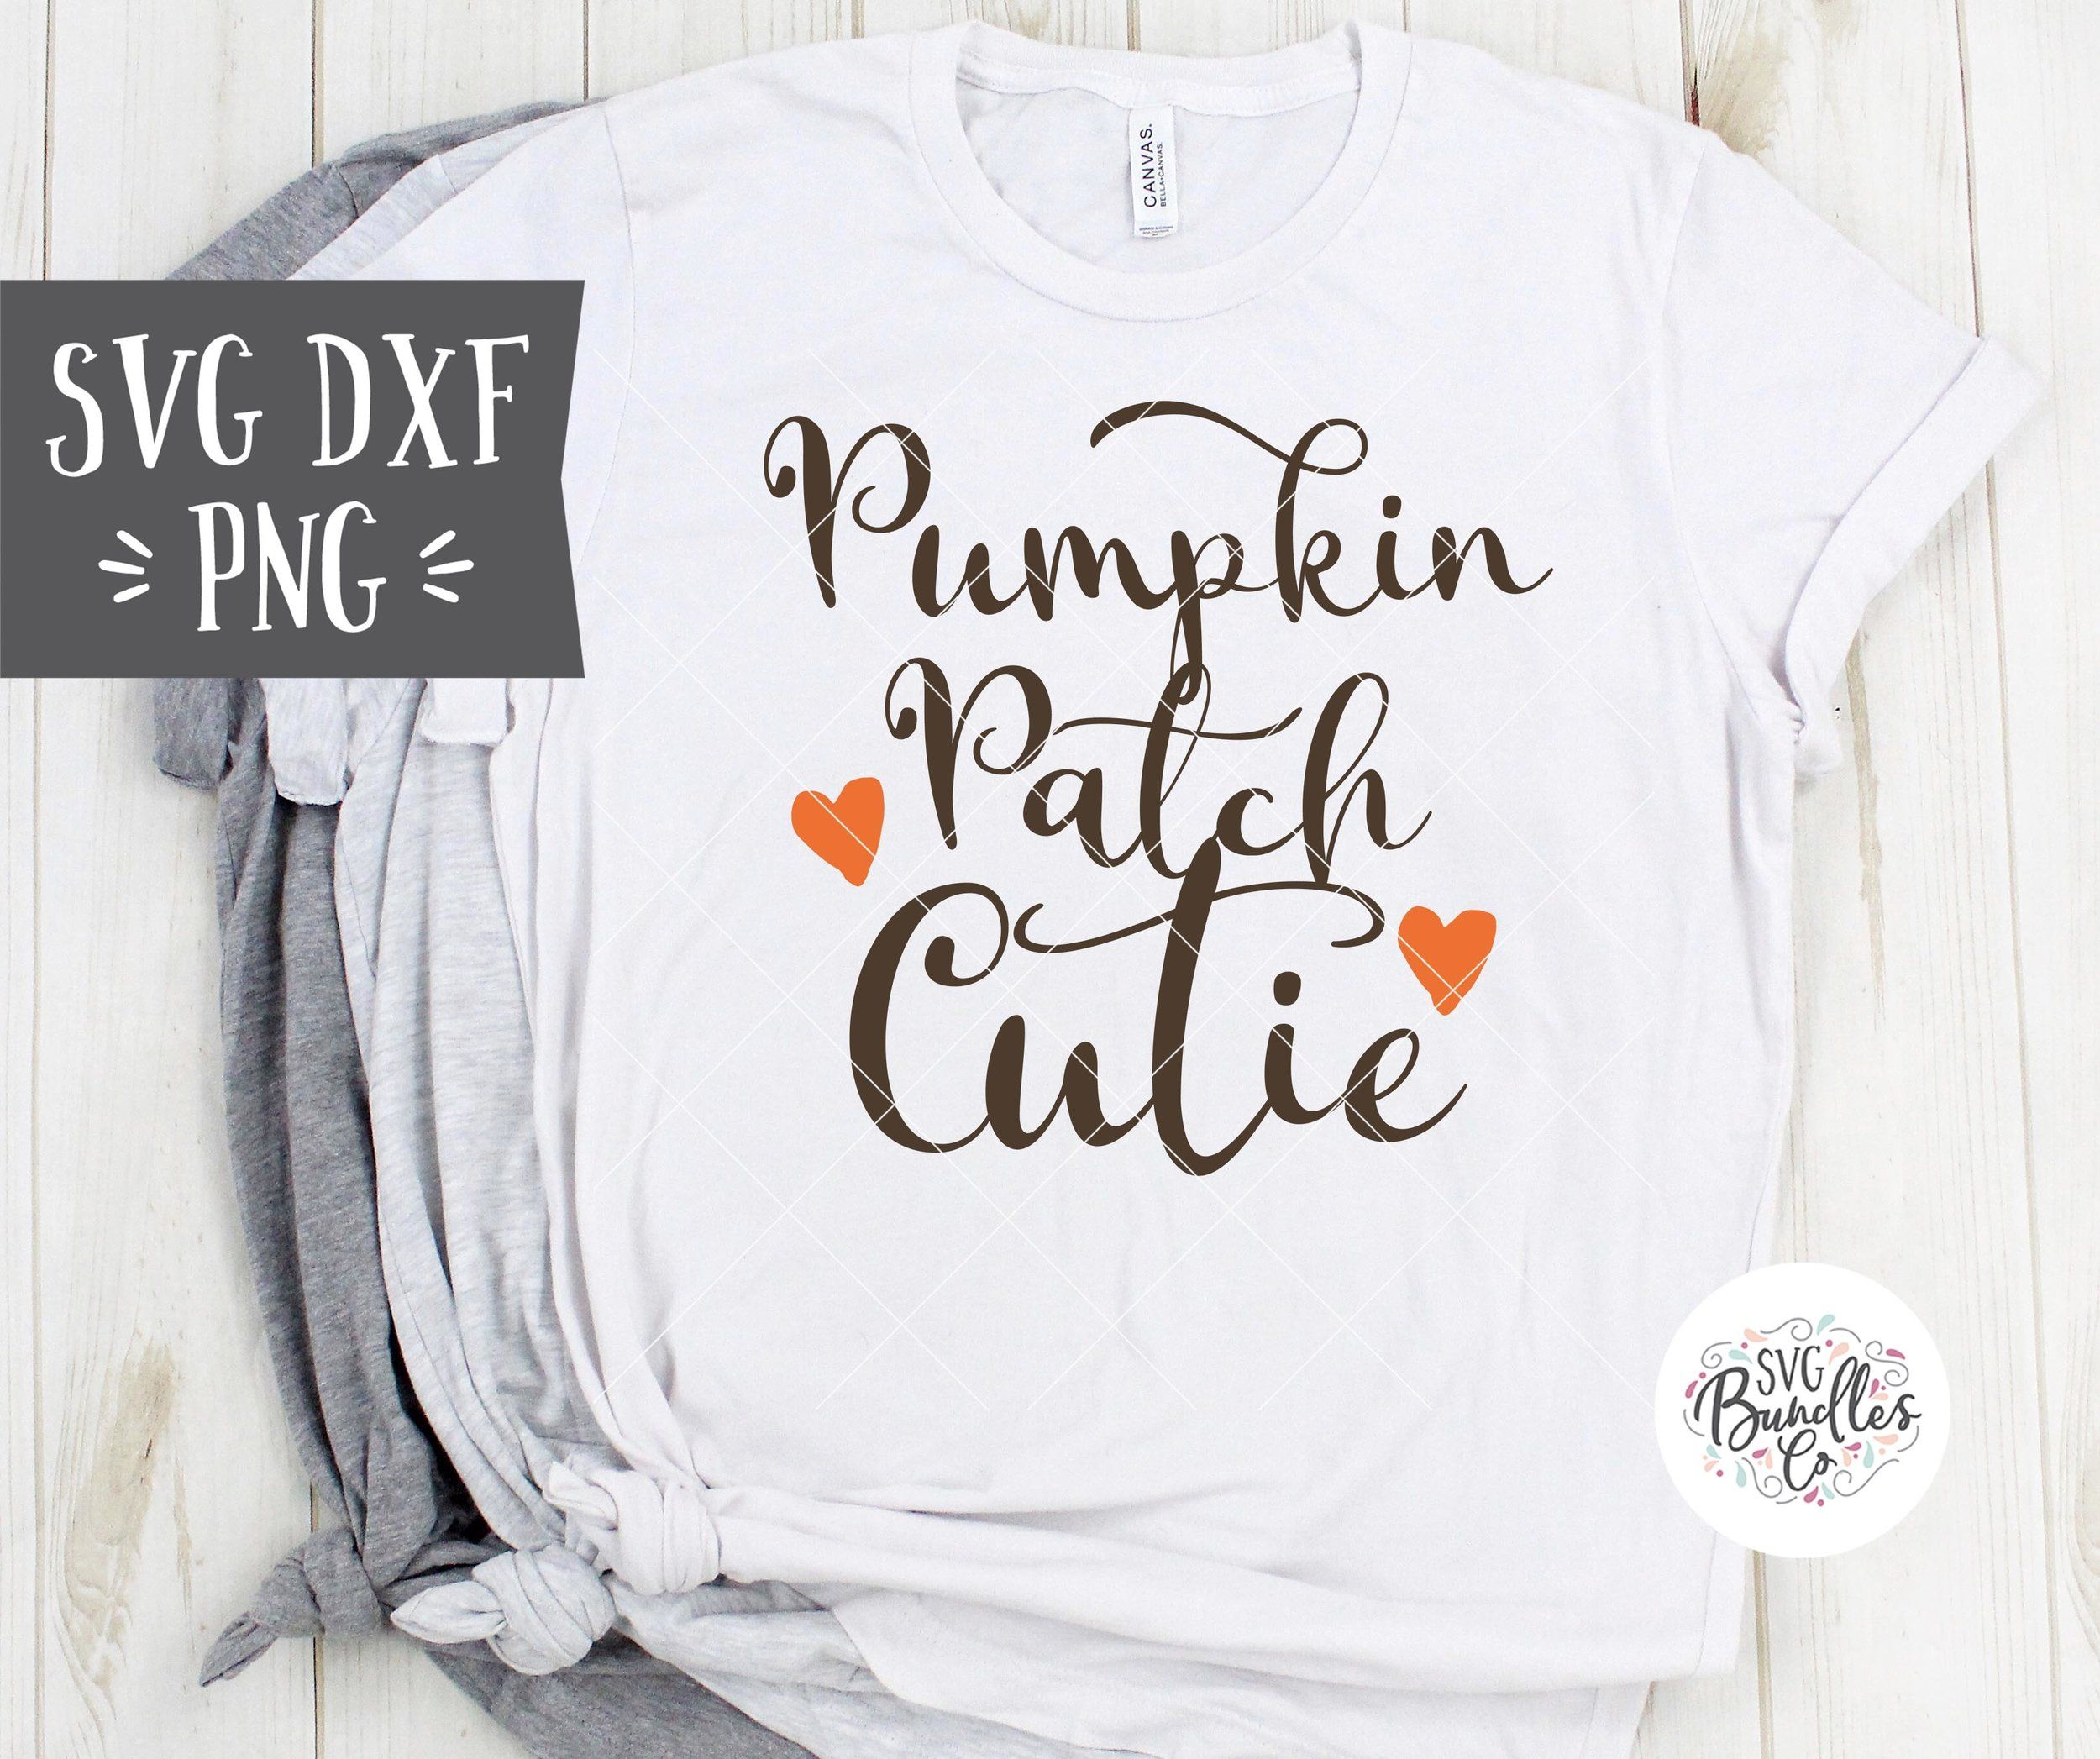 Pumpkin Patch Cutie Fall Autumn Baby Onesie Svg Dxf Png File Instant Download Baby Svg Pumpkin Patch Kids Tshirts